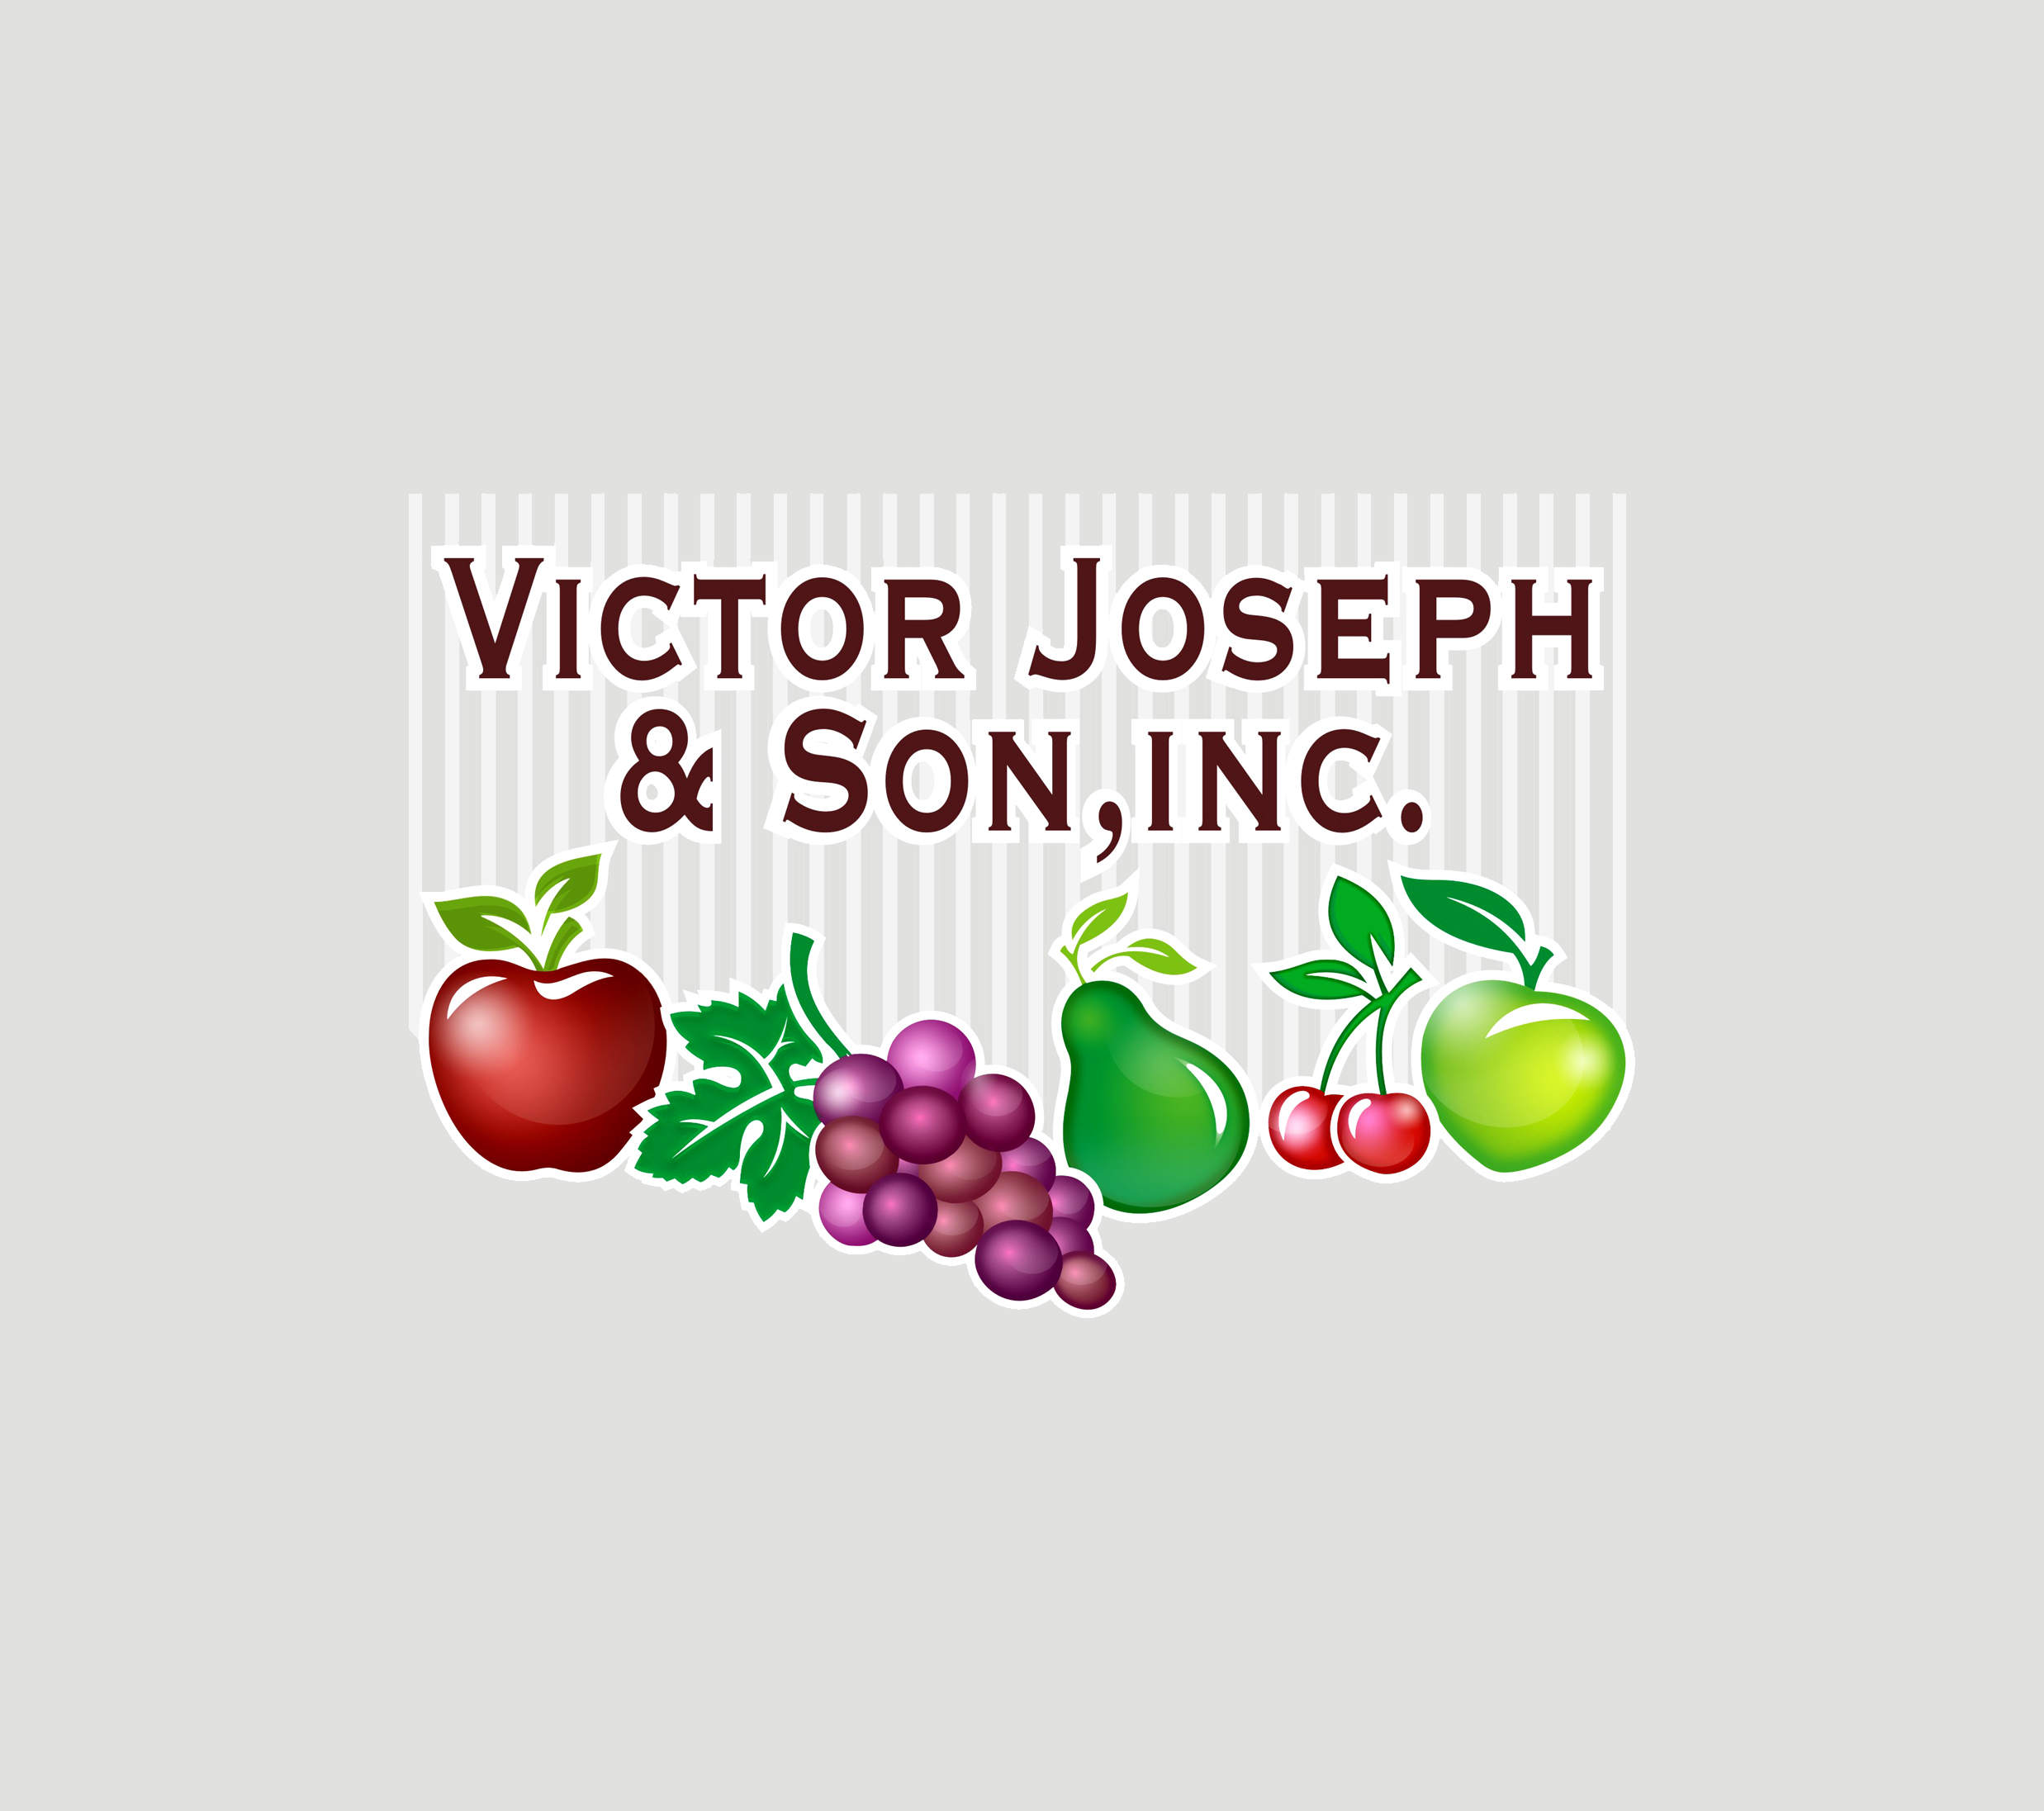 Logo Design by Private User - Entry No. 247 in the Logo Design Contest Imaginative Logo Design for Victor Joseph & Son, Inc..